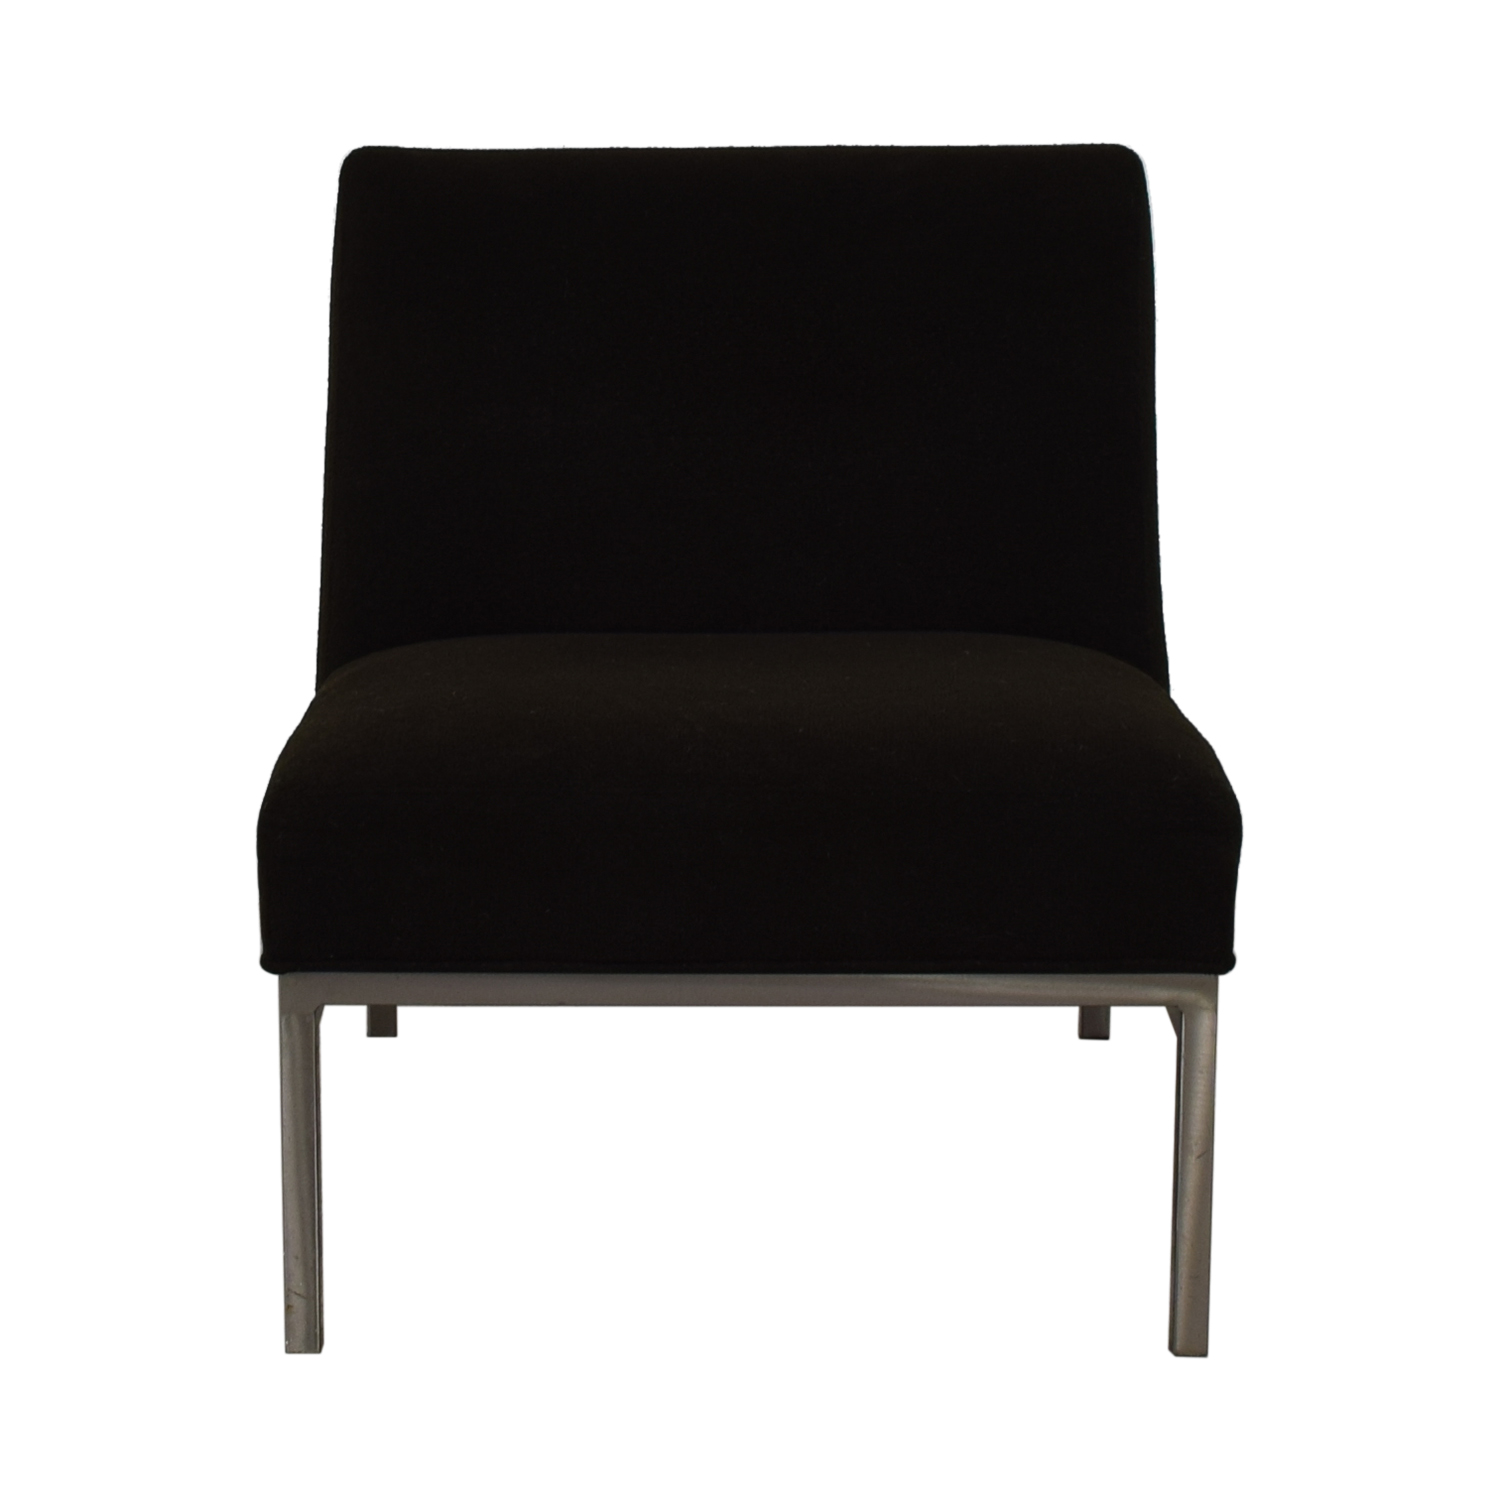 shop Room & Board Room & Board Steel and Fabric Accent Chair online